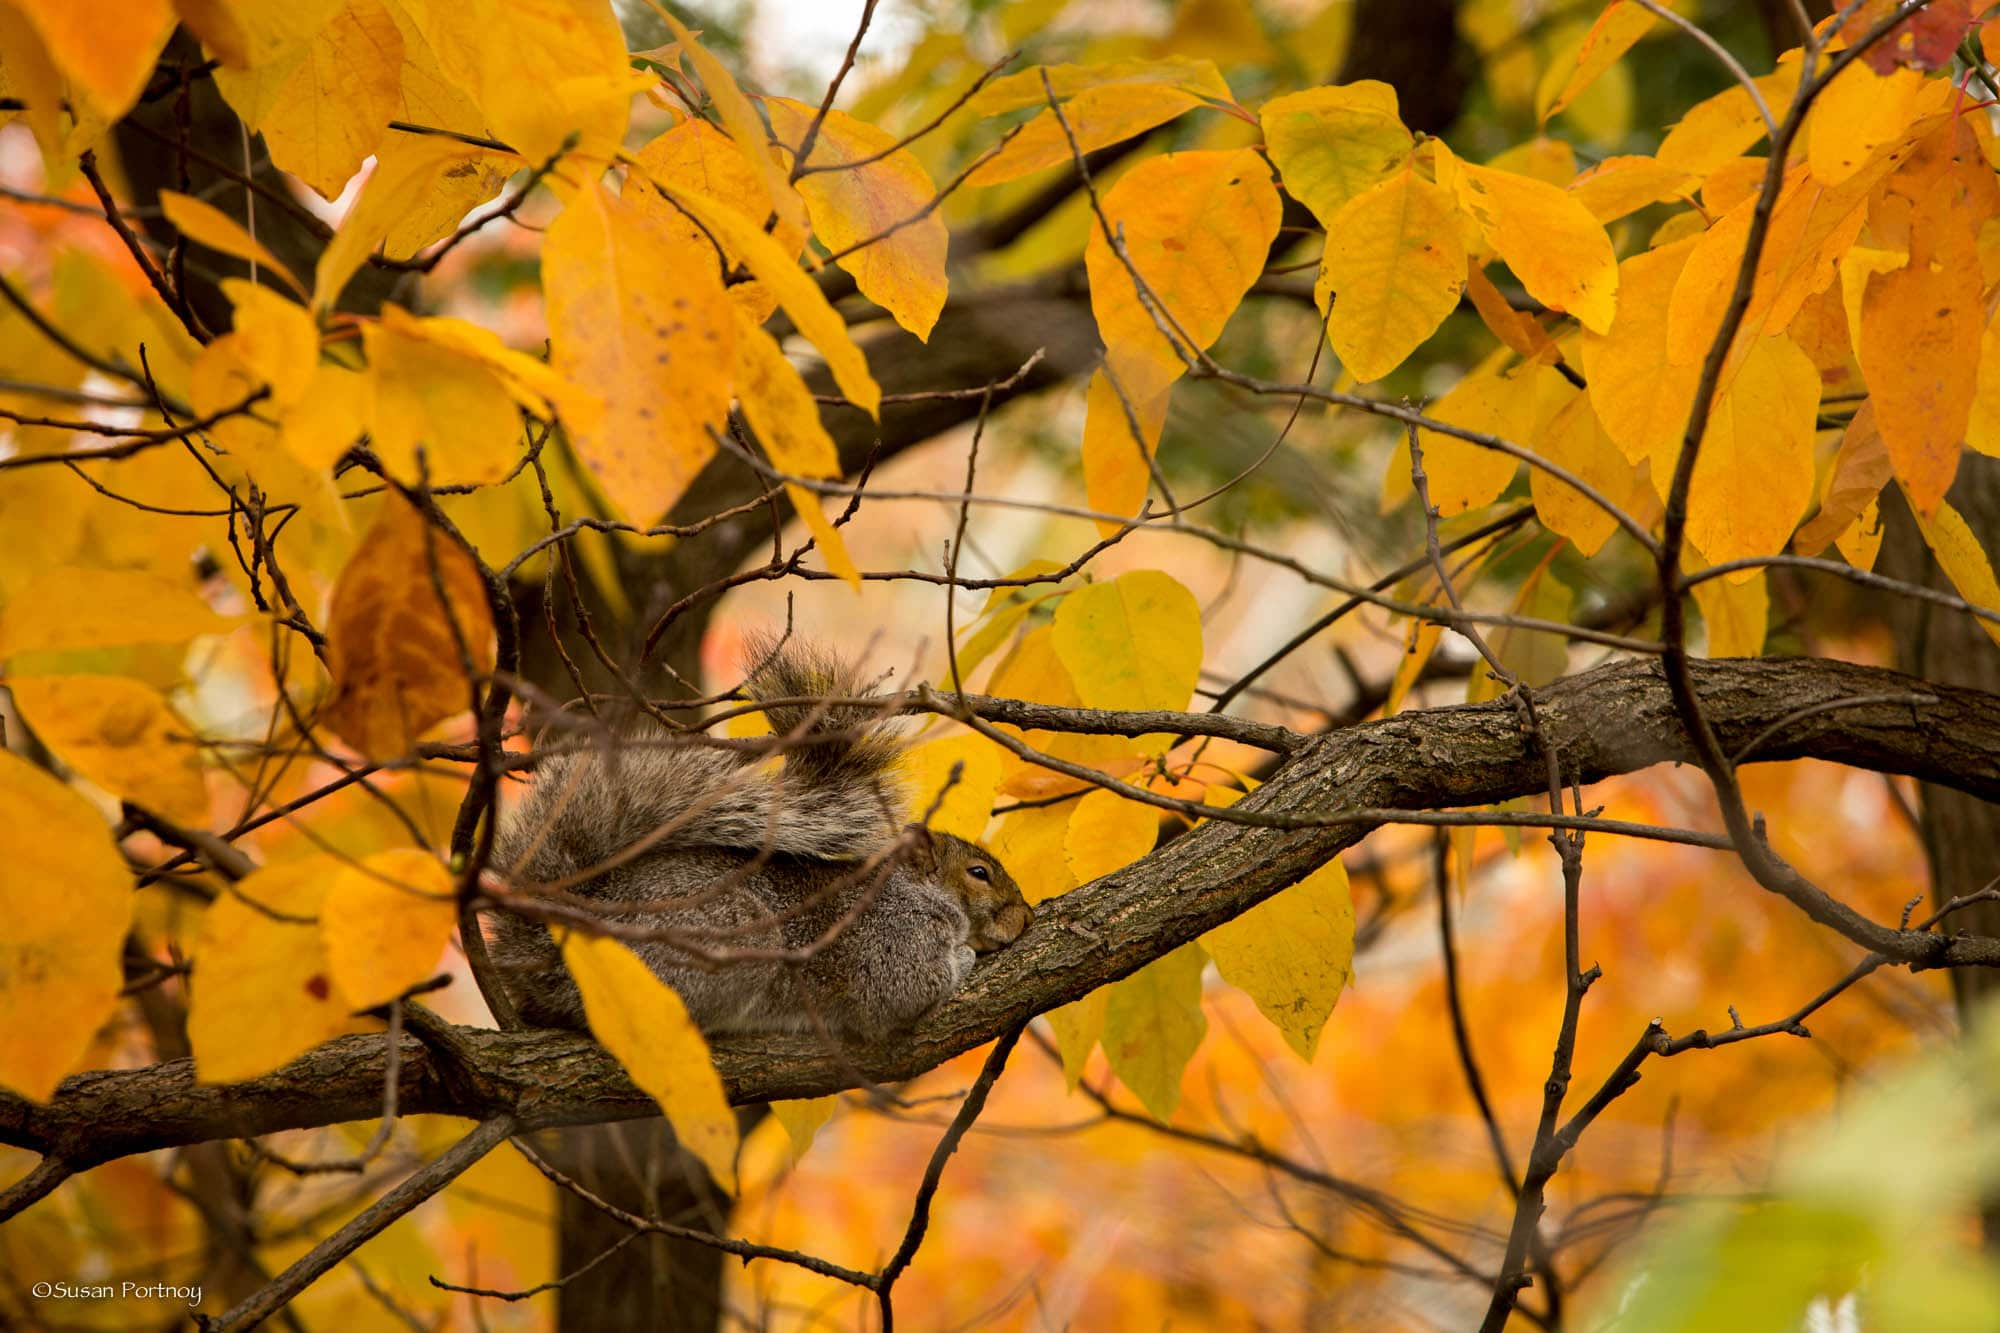 Sleepy squirrel on a branch in Central Park in NYC